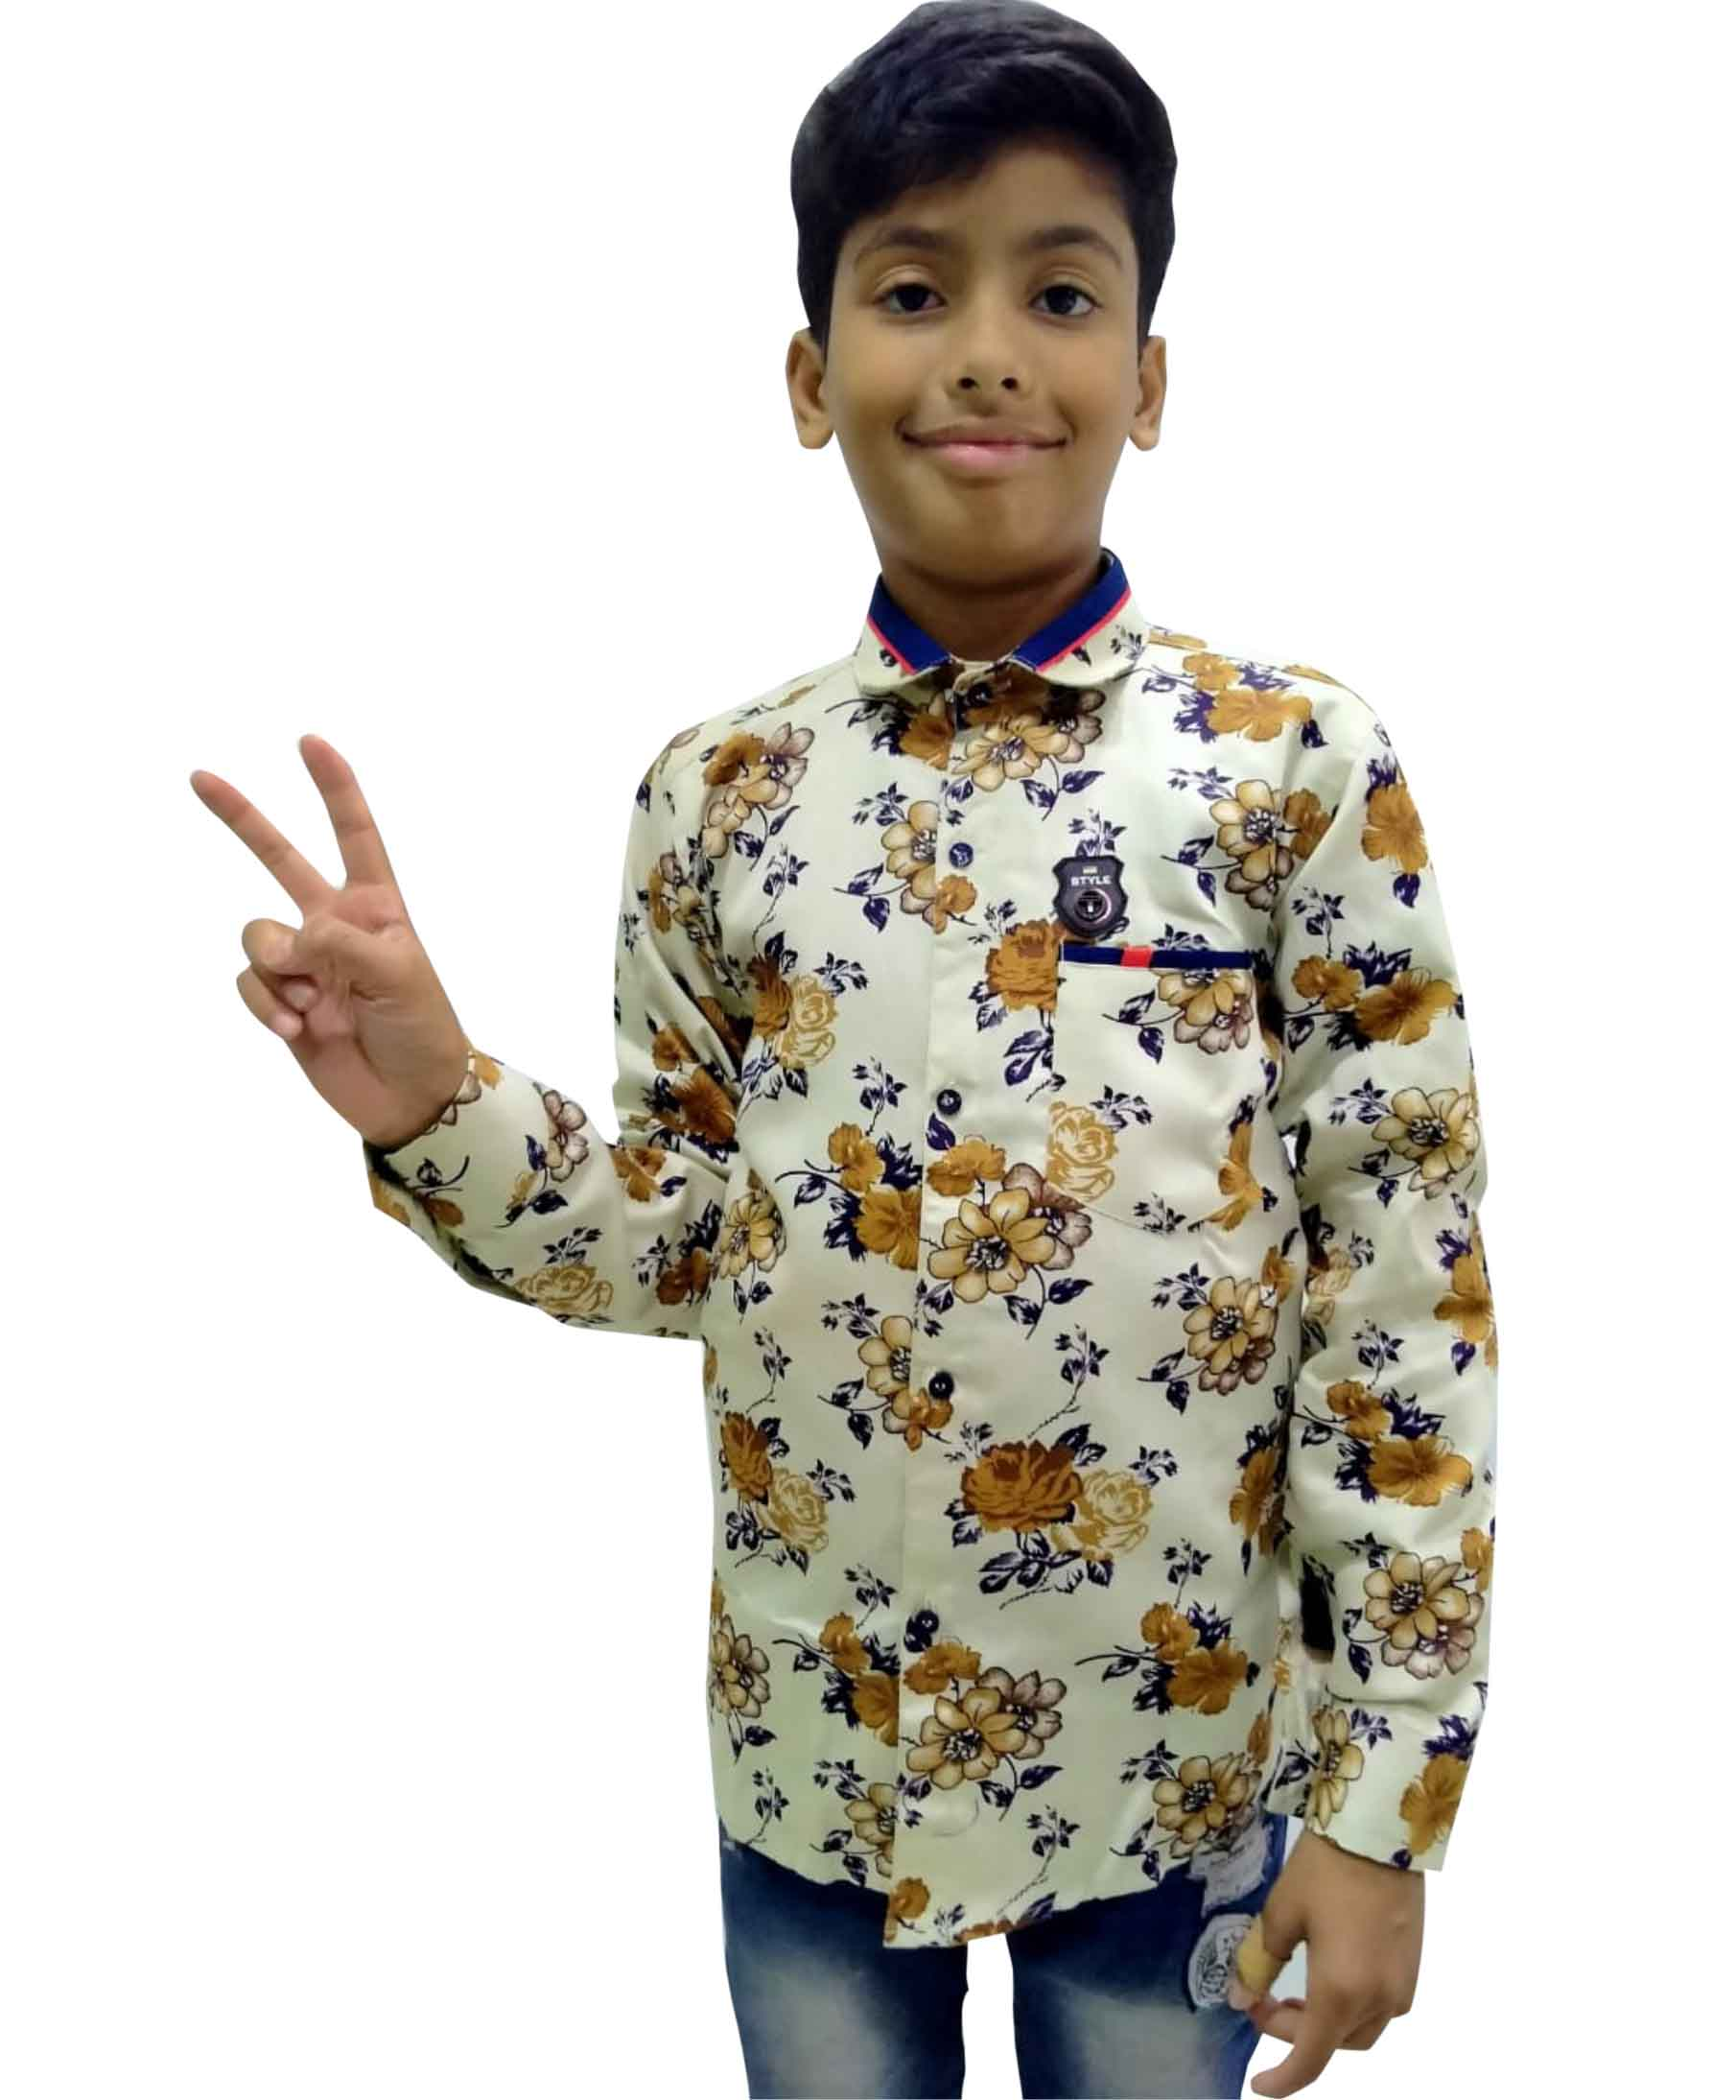 KFS JAN 02 2020-BROWN BLUE KIDS FULL SLEEVES SHIRT